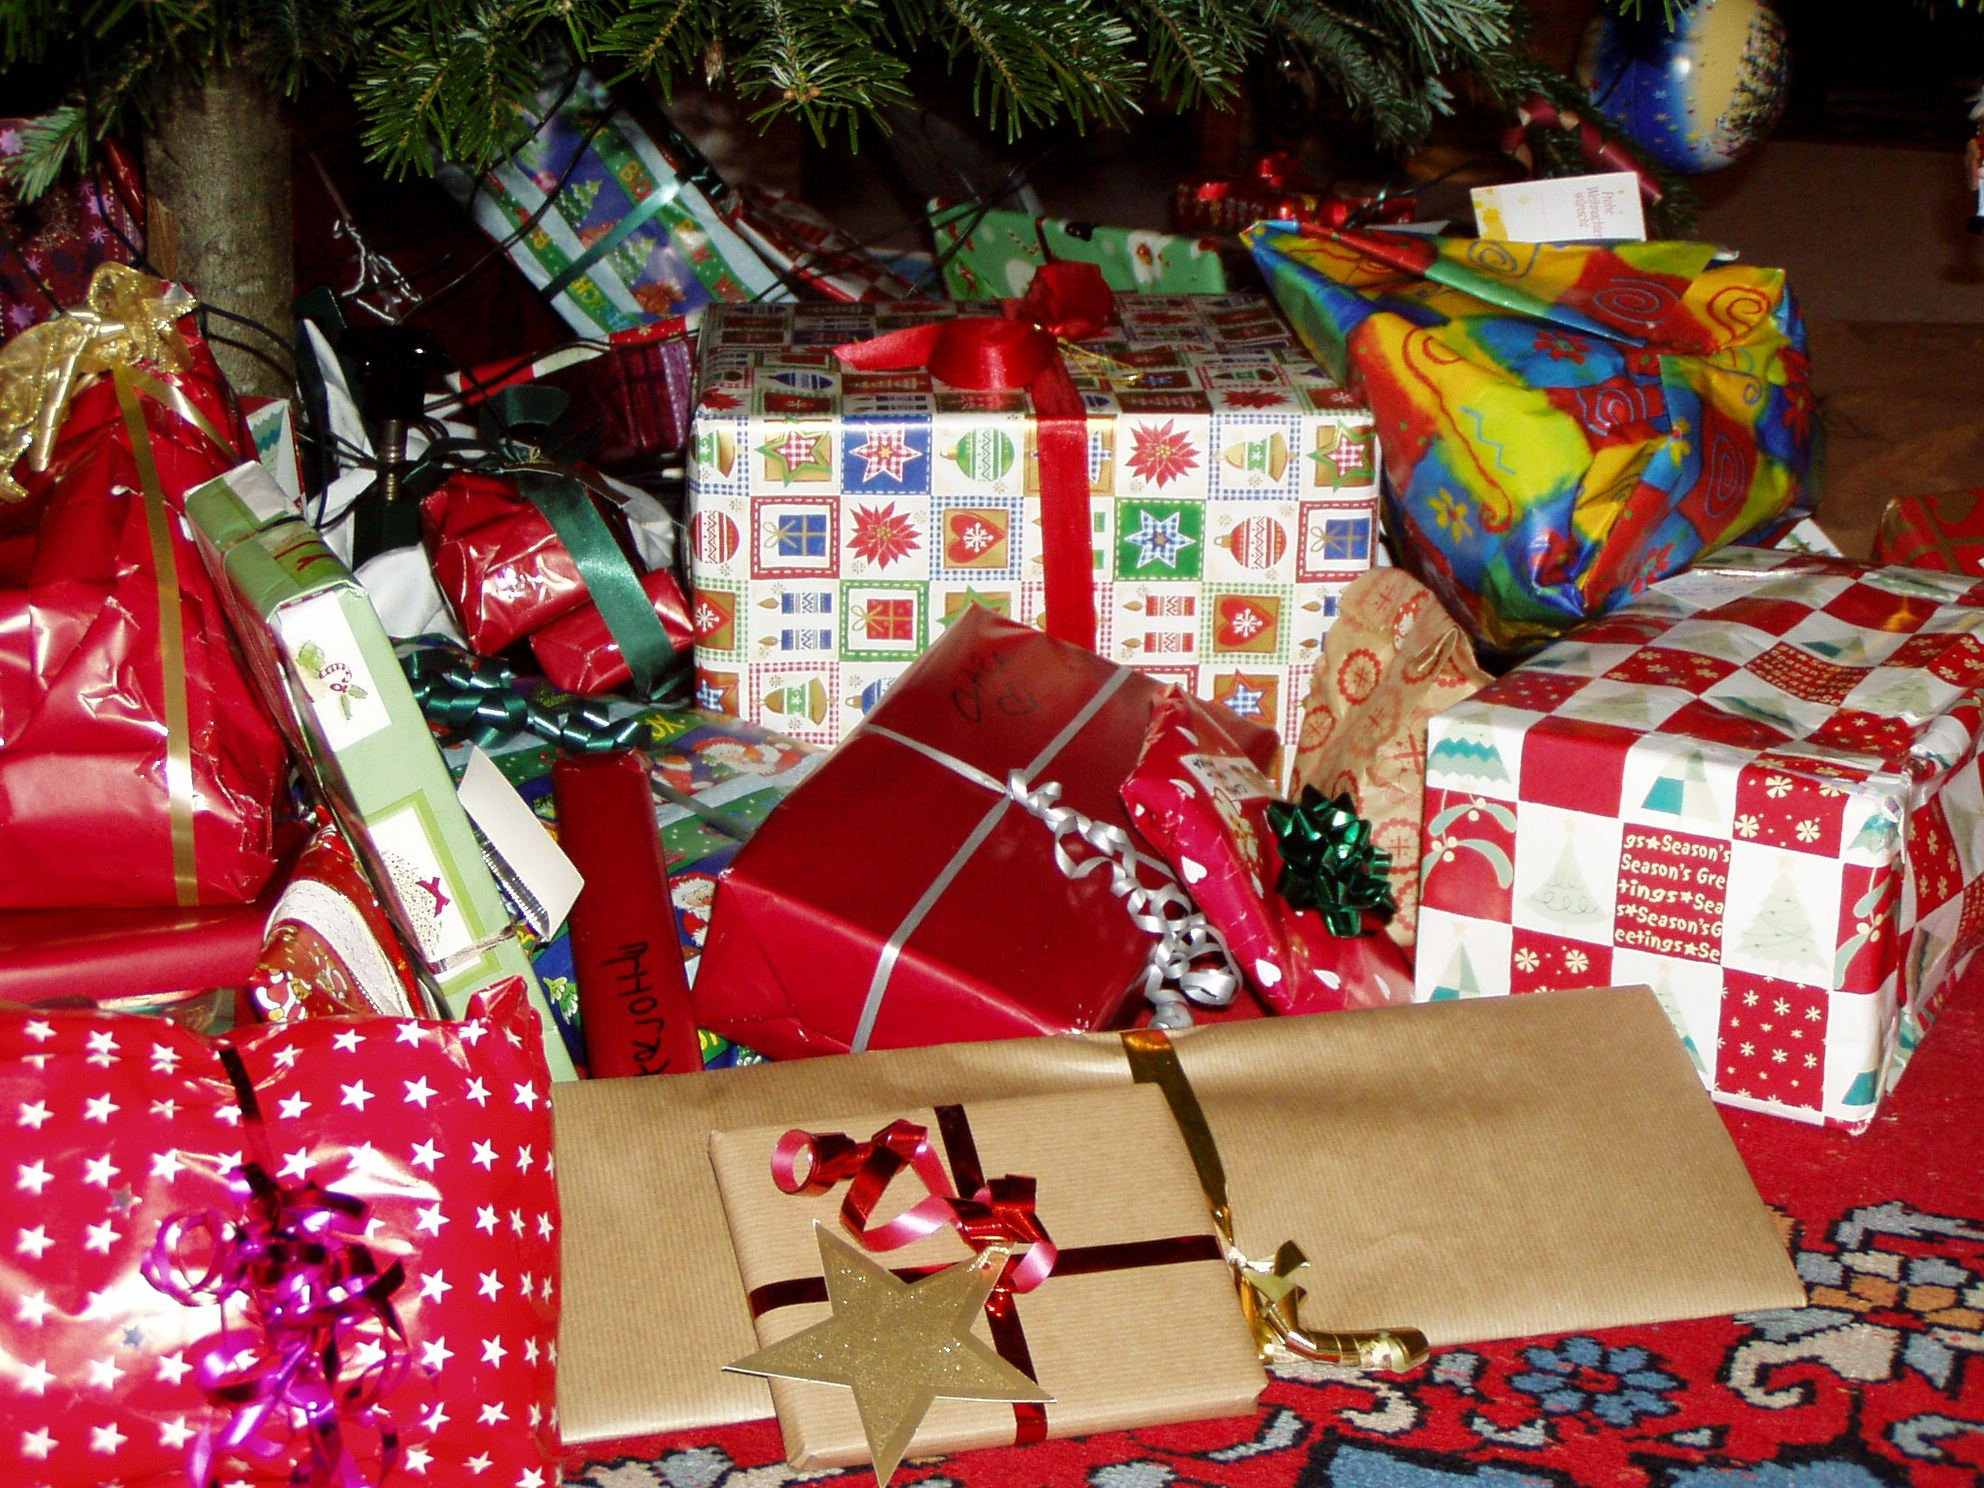 organising toys - pile of presents under the tree